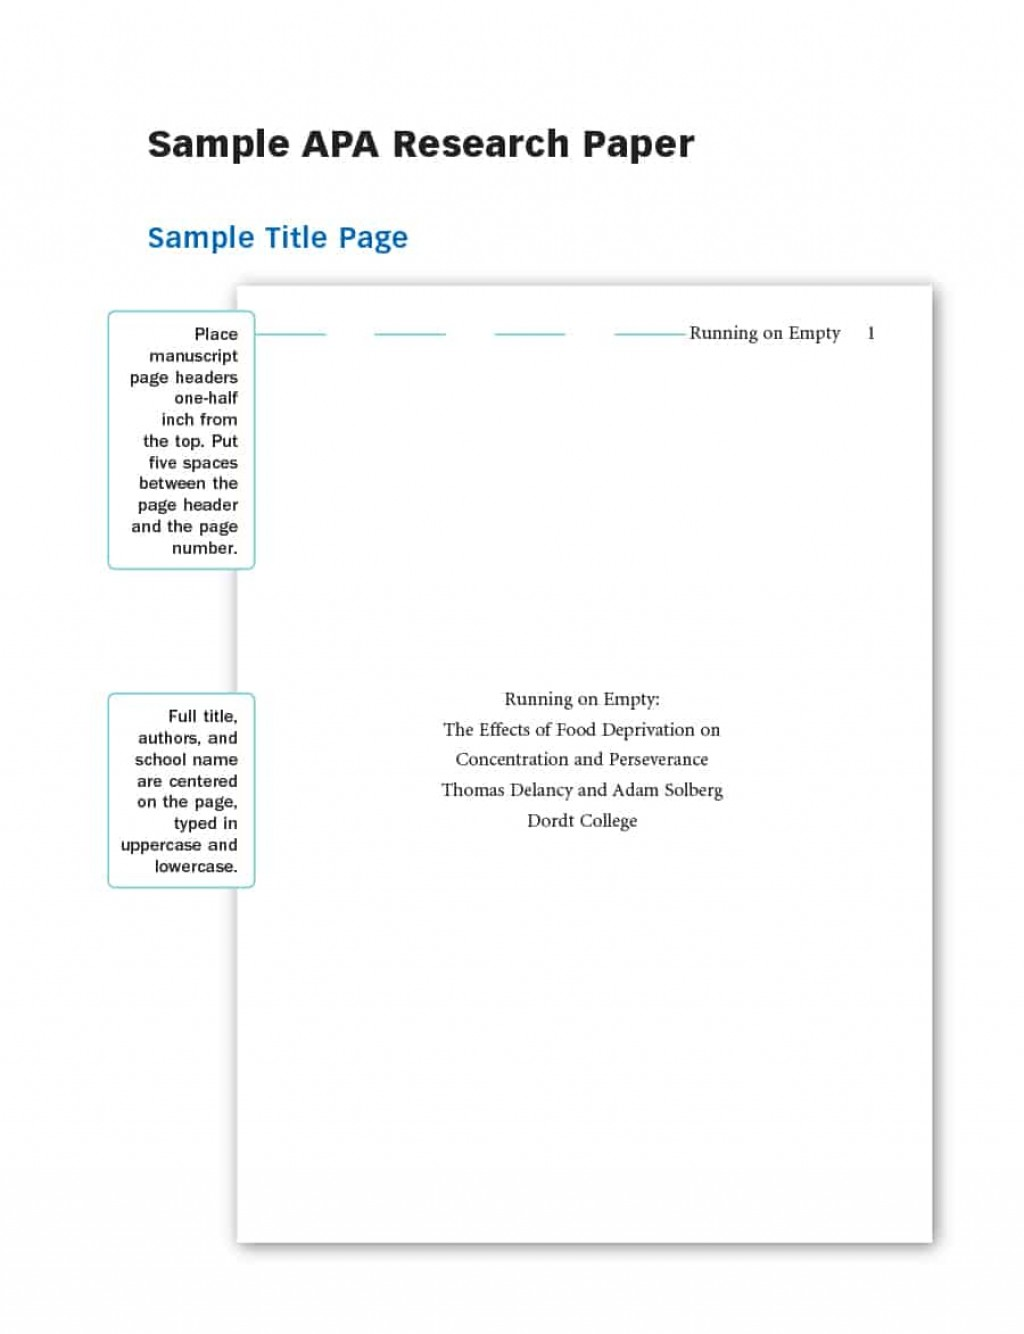 005 First Page Research Paper Mla Format Template Unique Style For The Of A Title Large